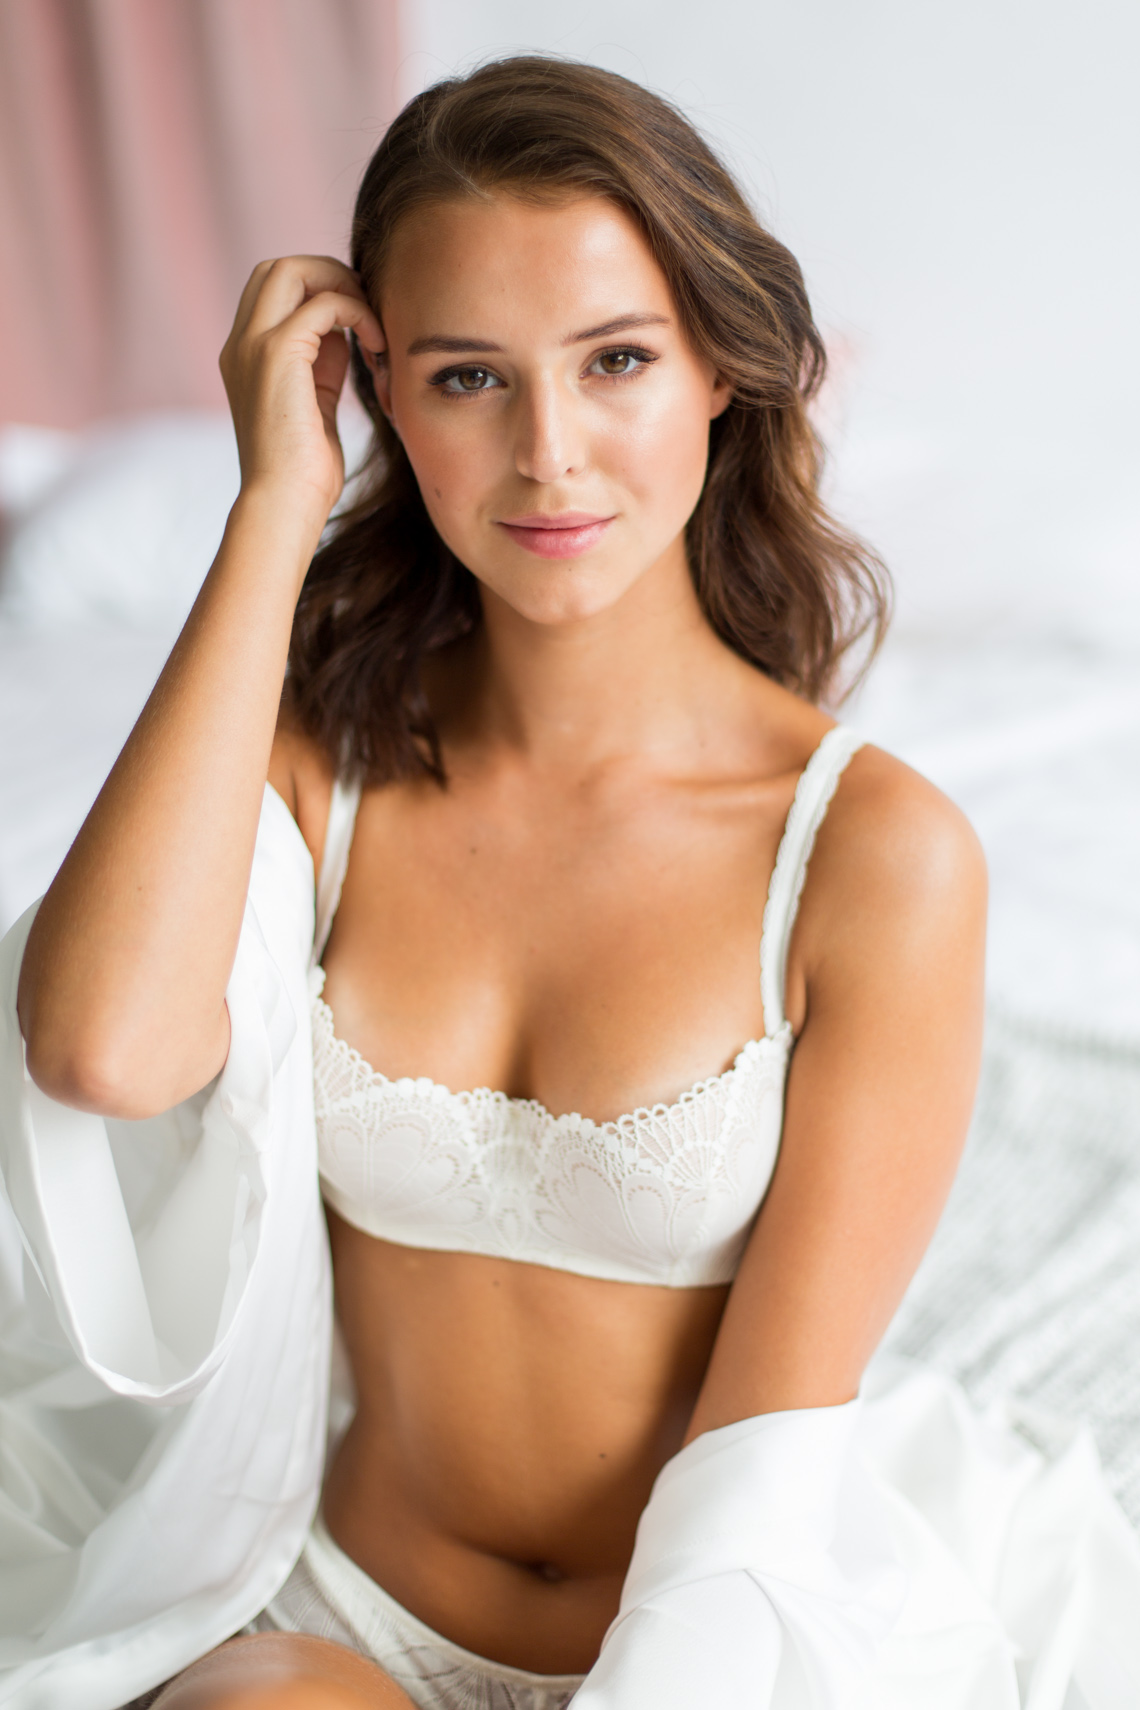 b1f3aab24fc7 Practical & Pretty Luxury Bridal Lingerie from Wonderbra